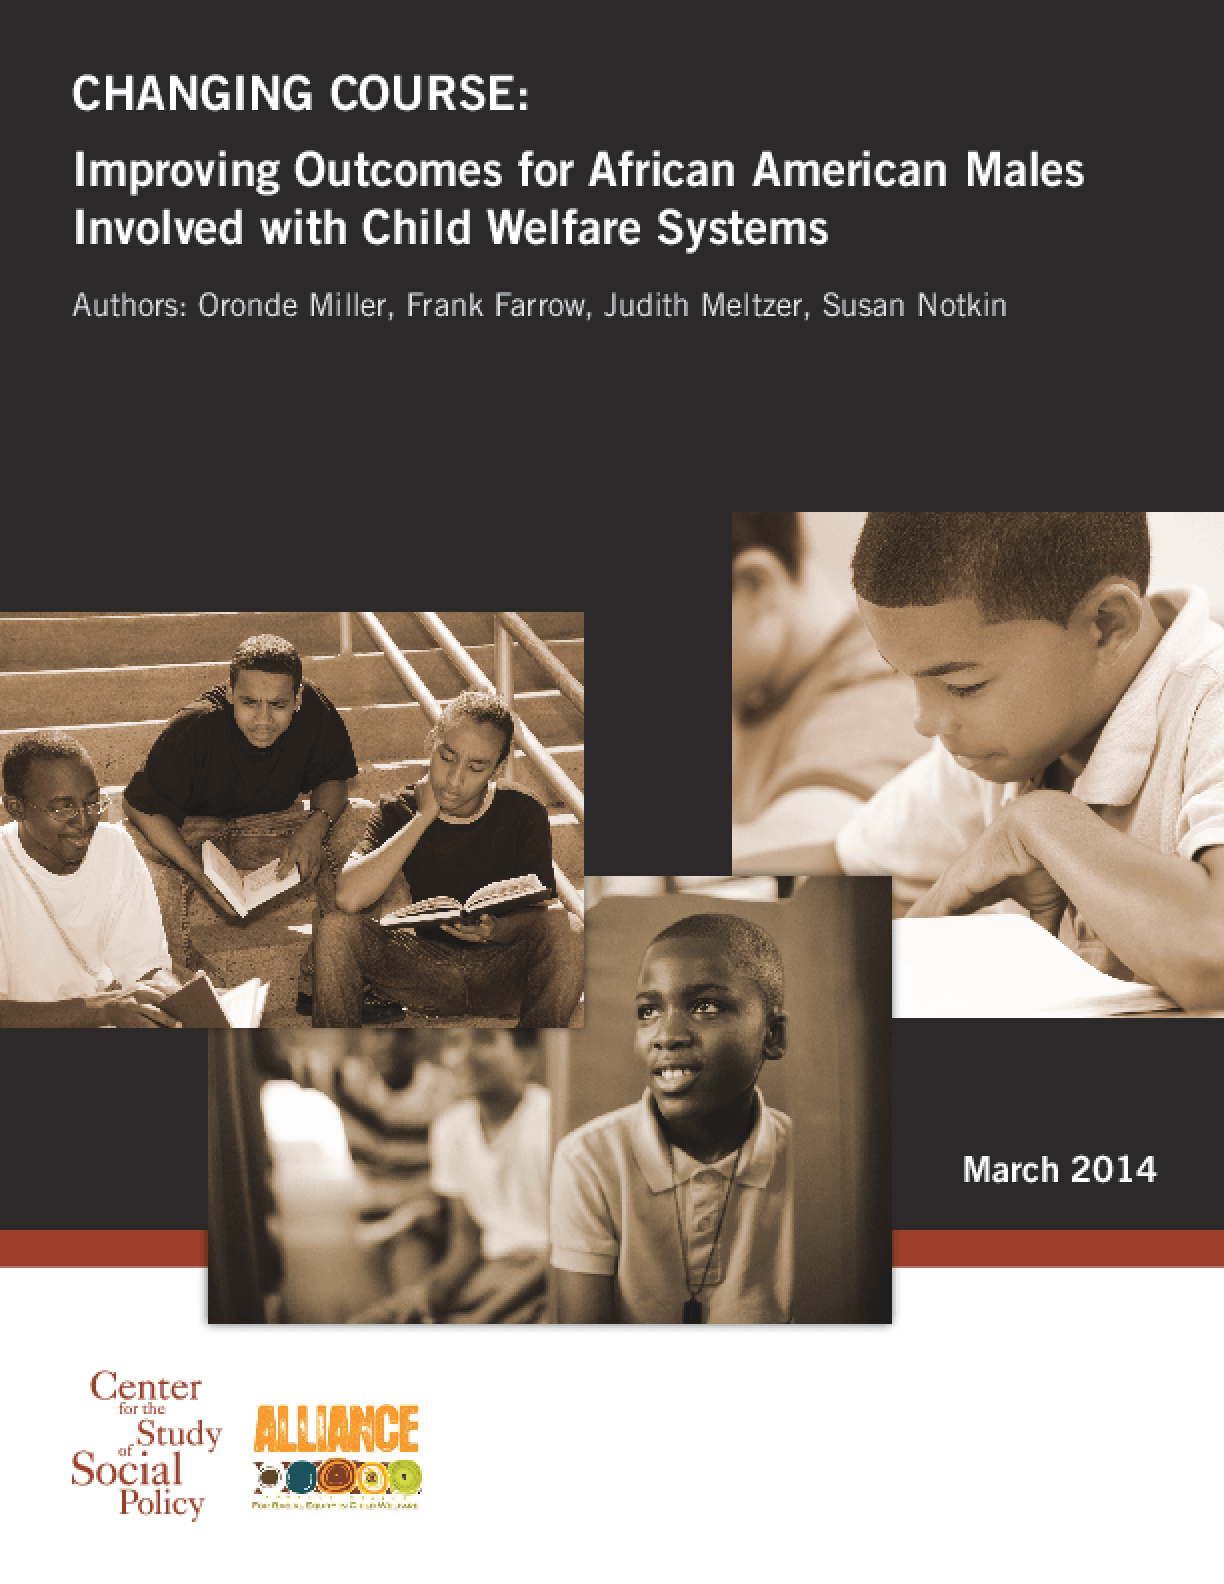 Changing Course: Improving Outcomes for African-American Males Involved With Child Welfare Systems